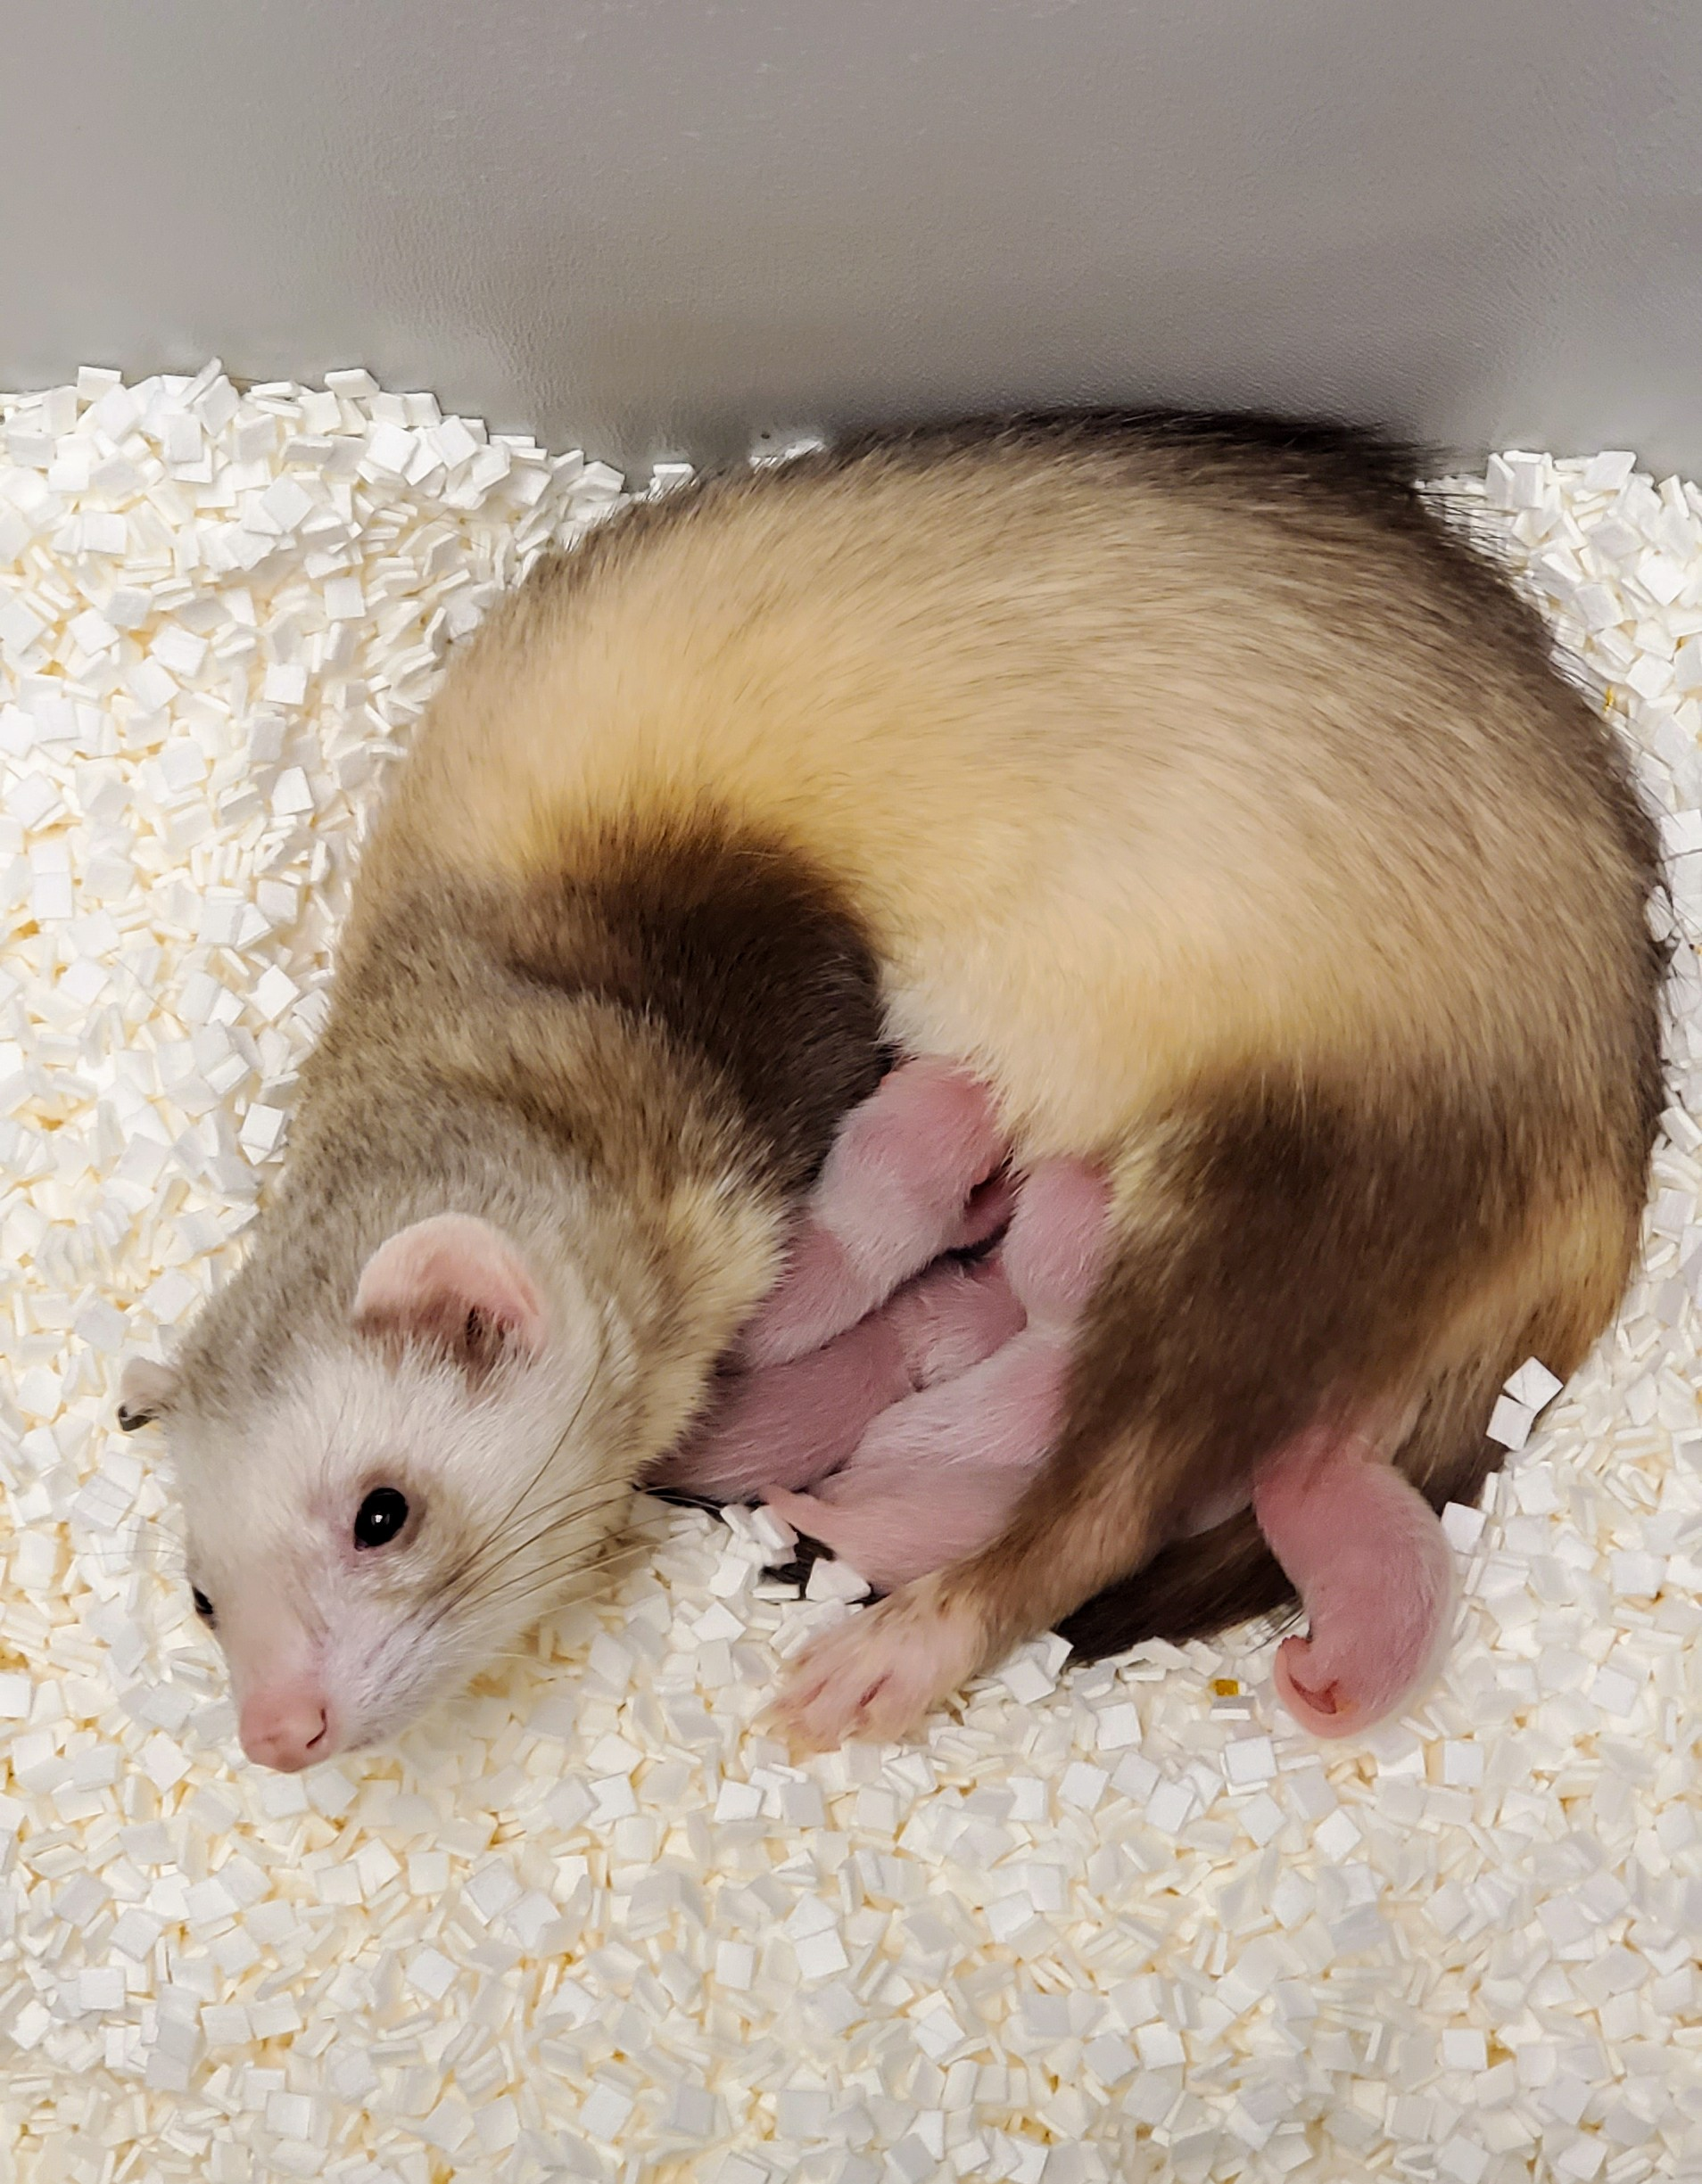 A domestic ferret mother feeding multiple ferret kits while laying in paper bedding